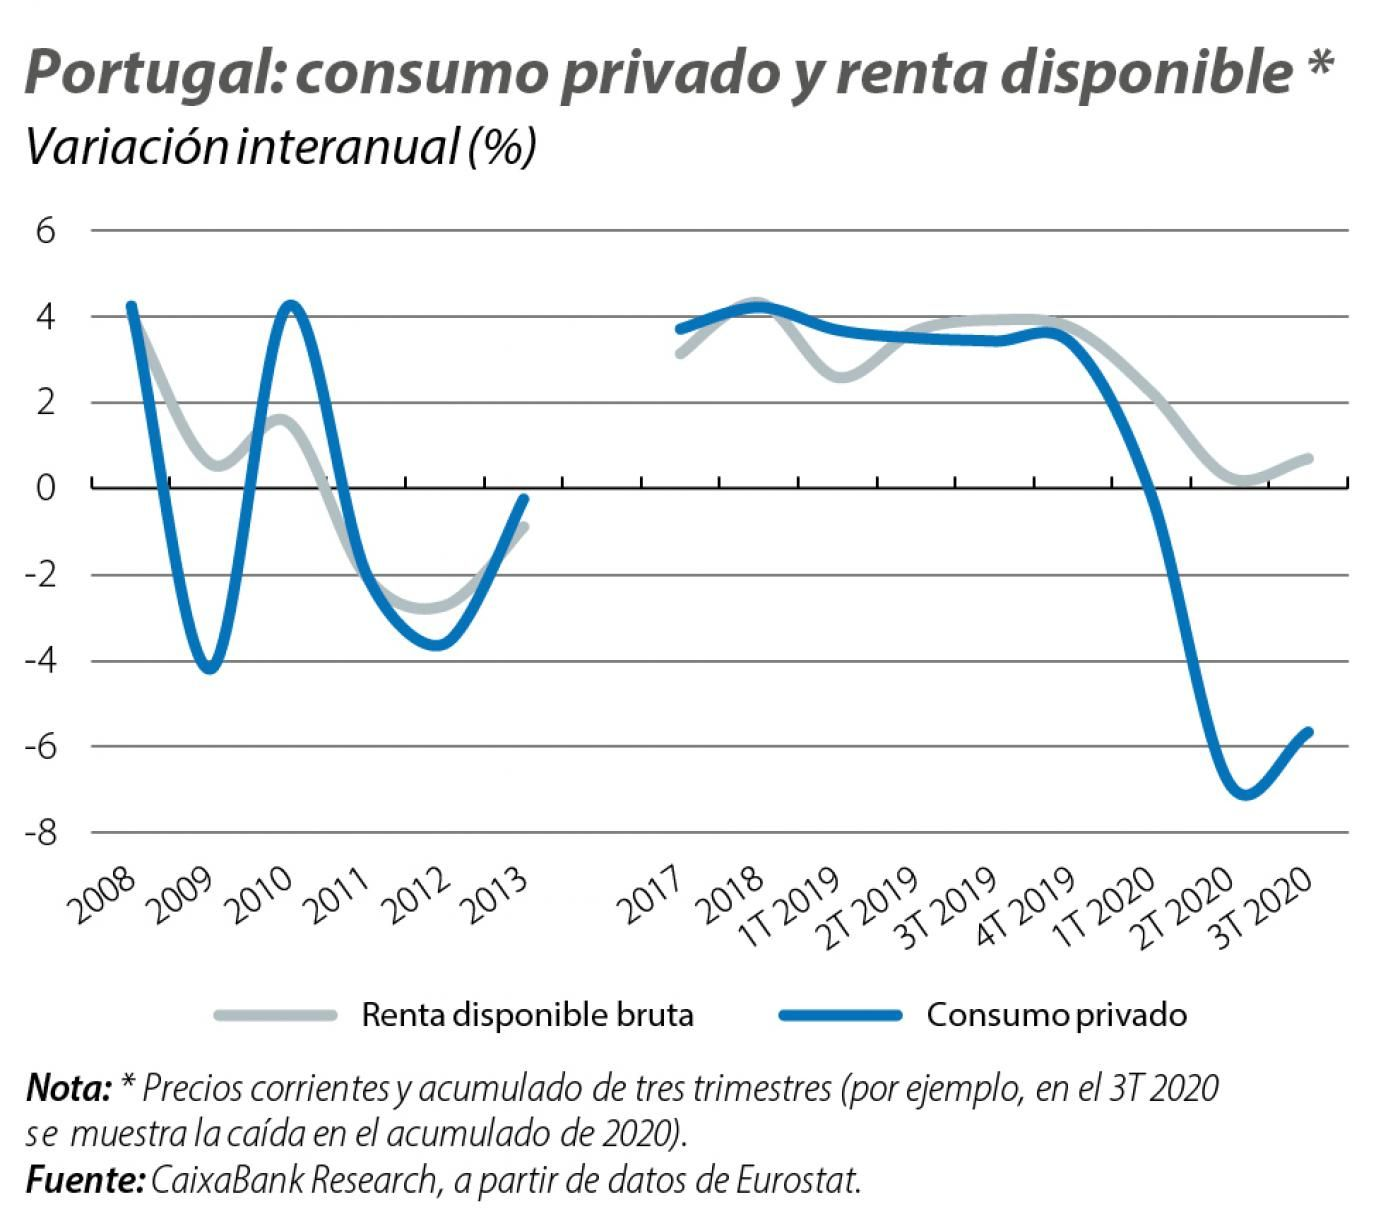 Portugal: consumo privado y renta disponible